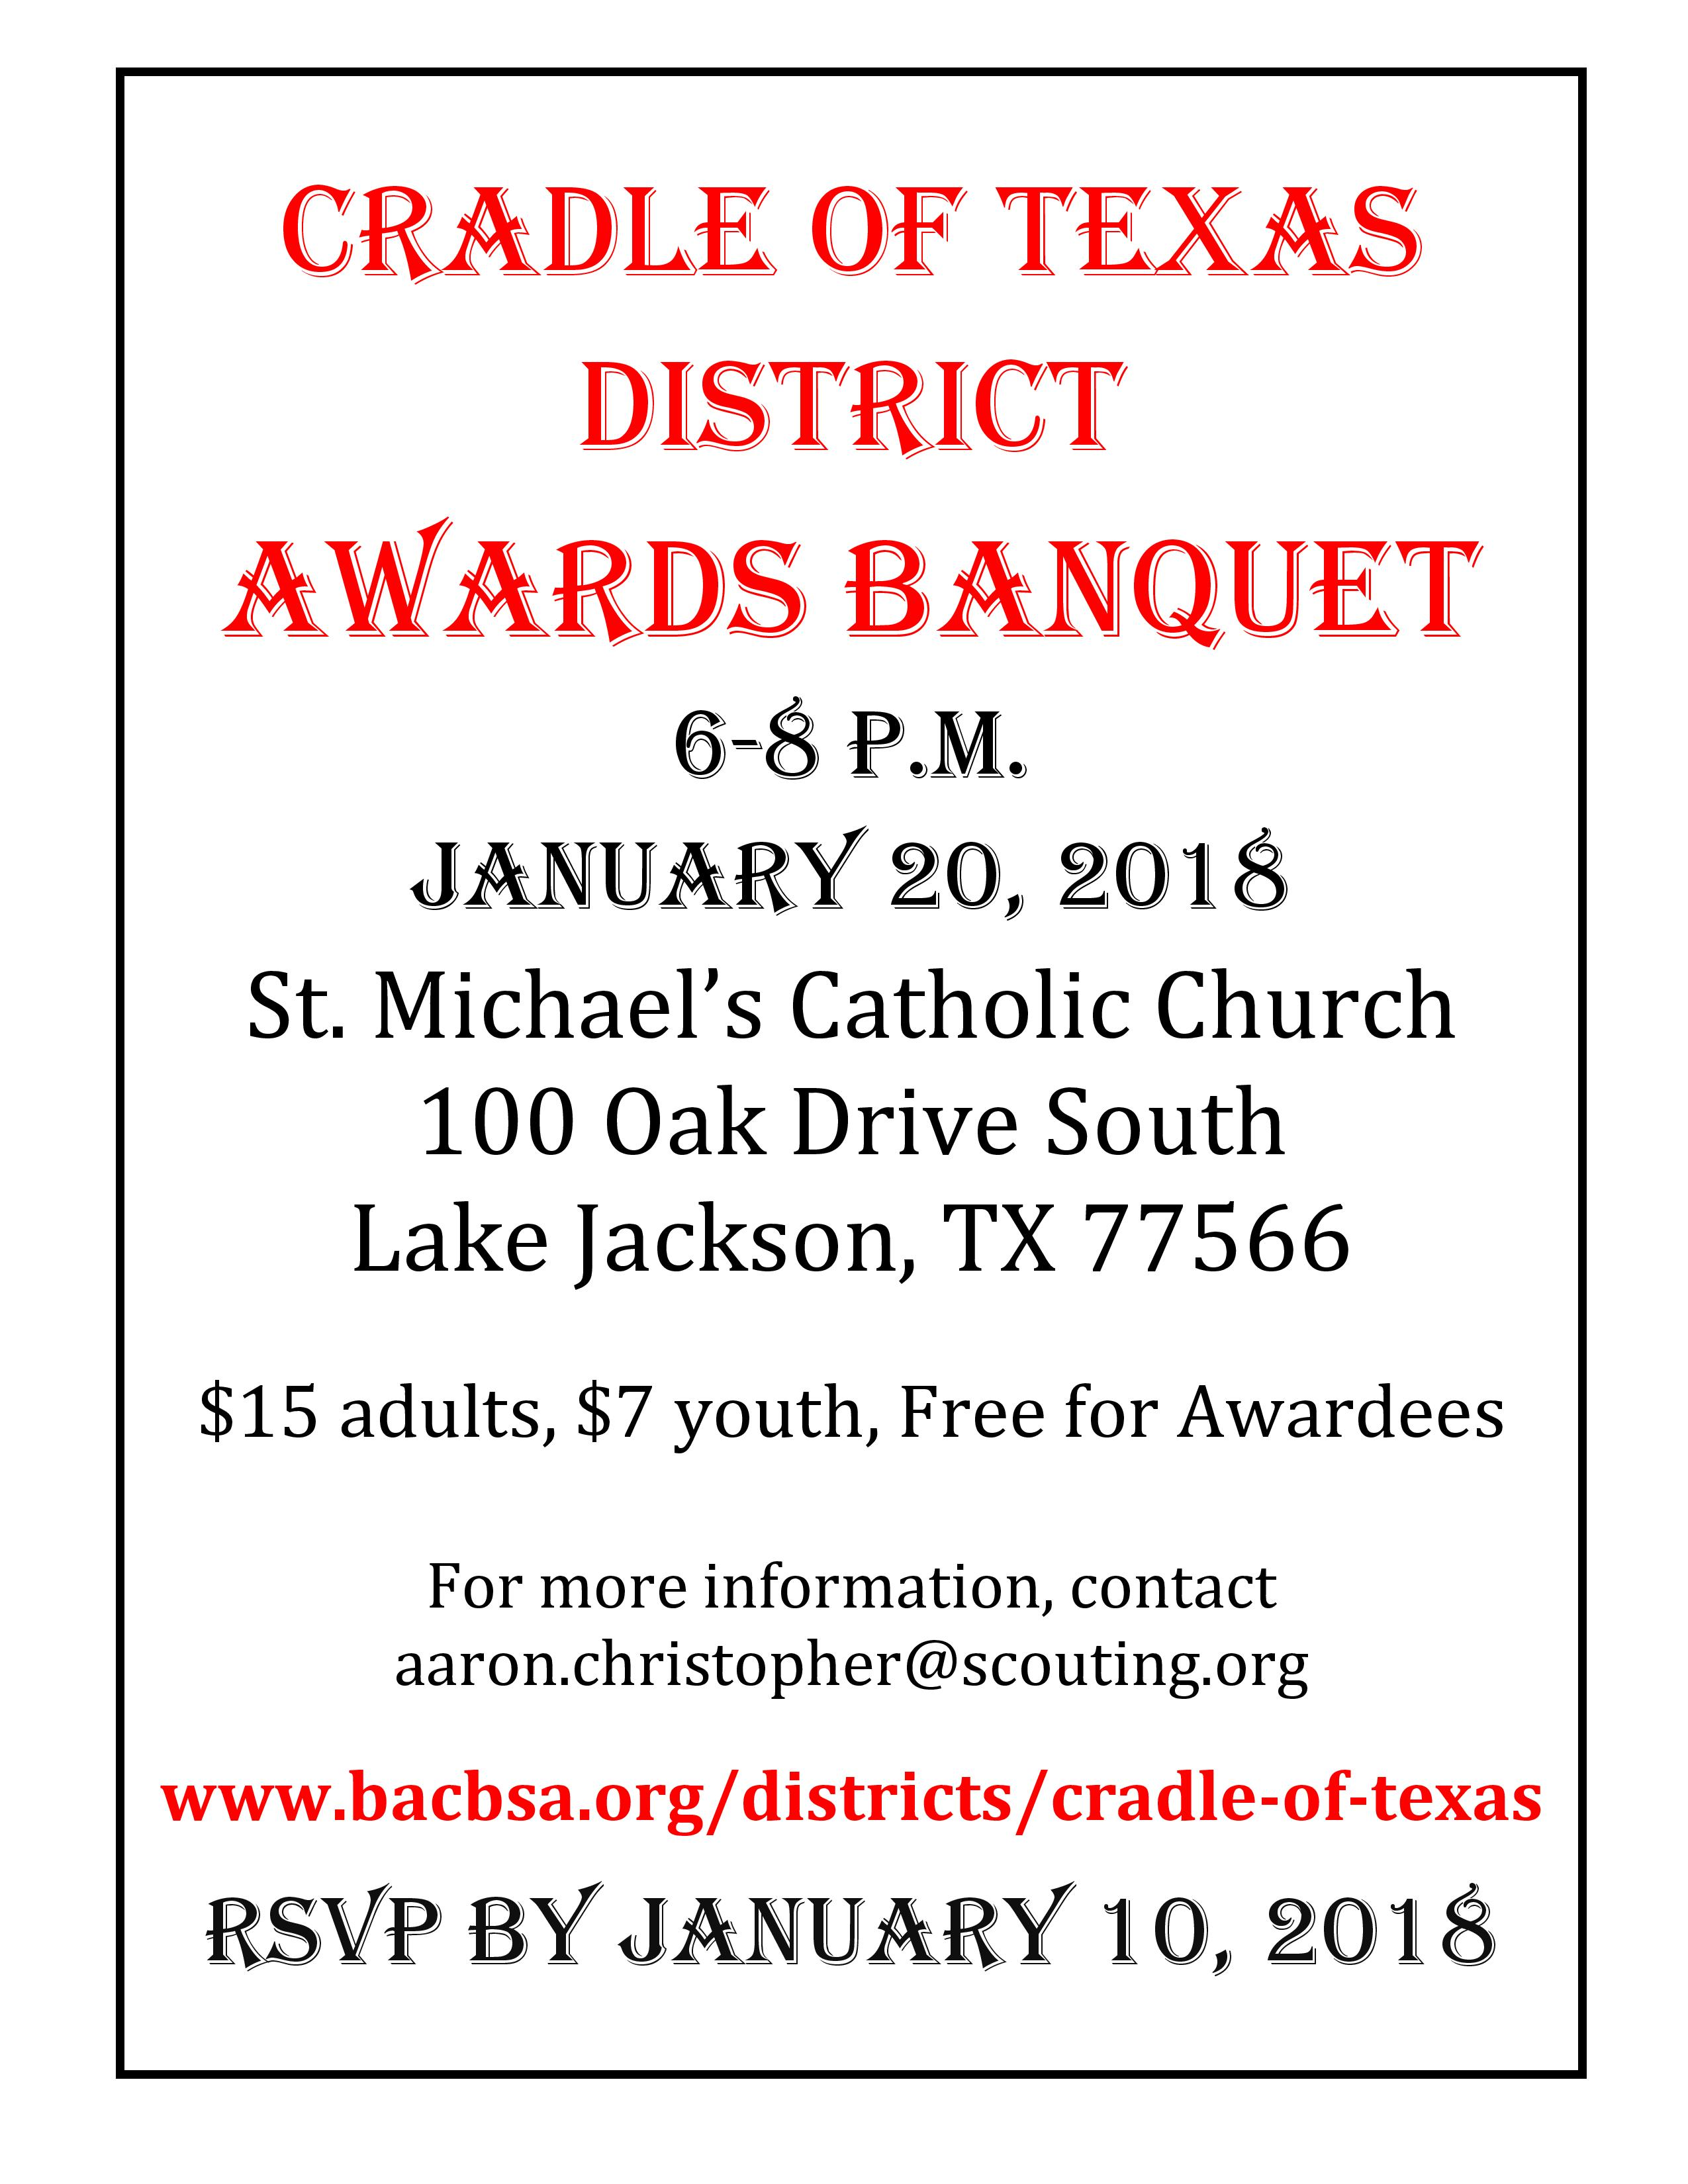 Cradle of Texas Banquet